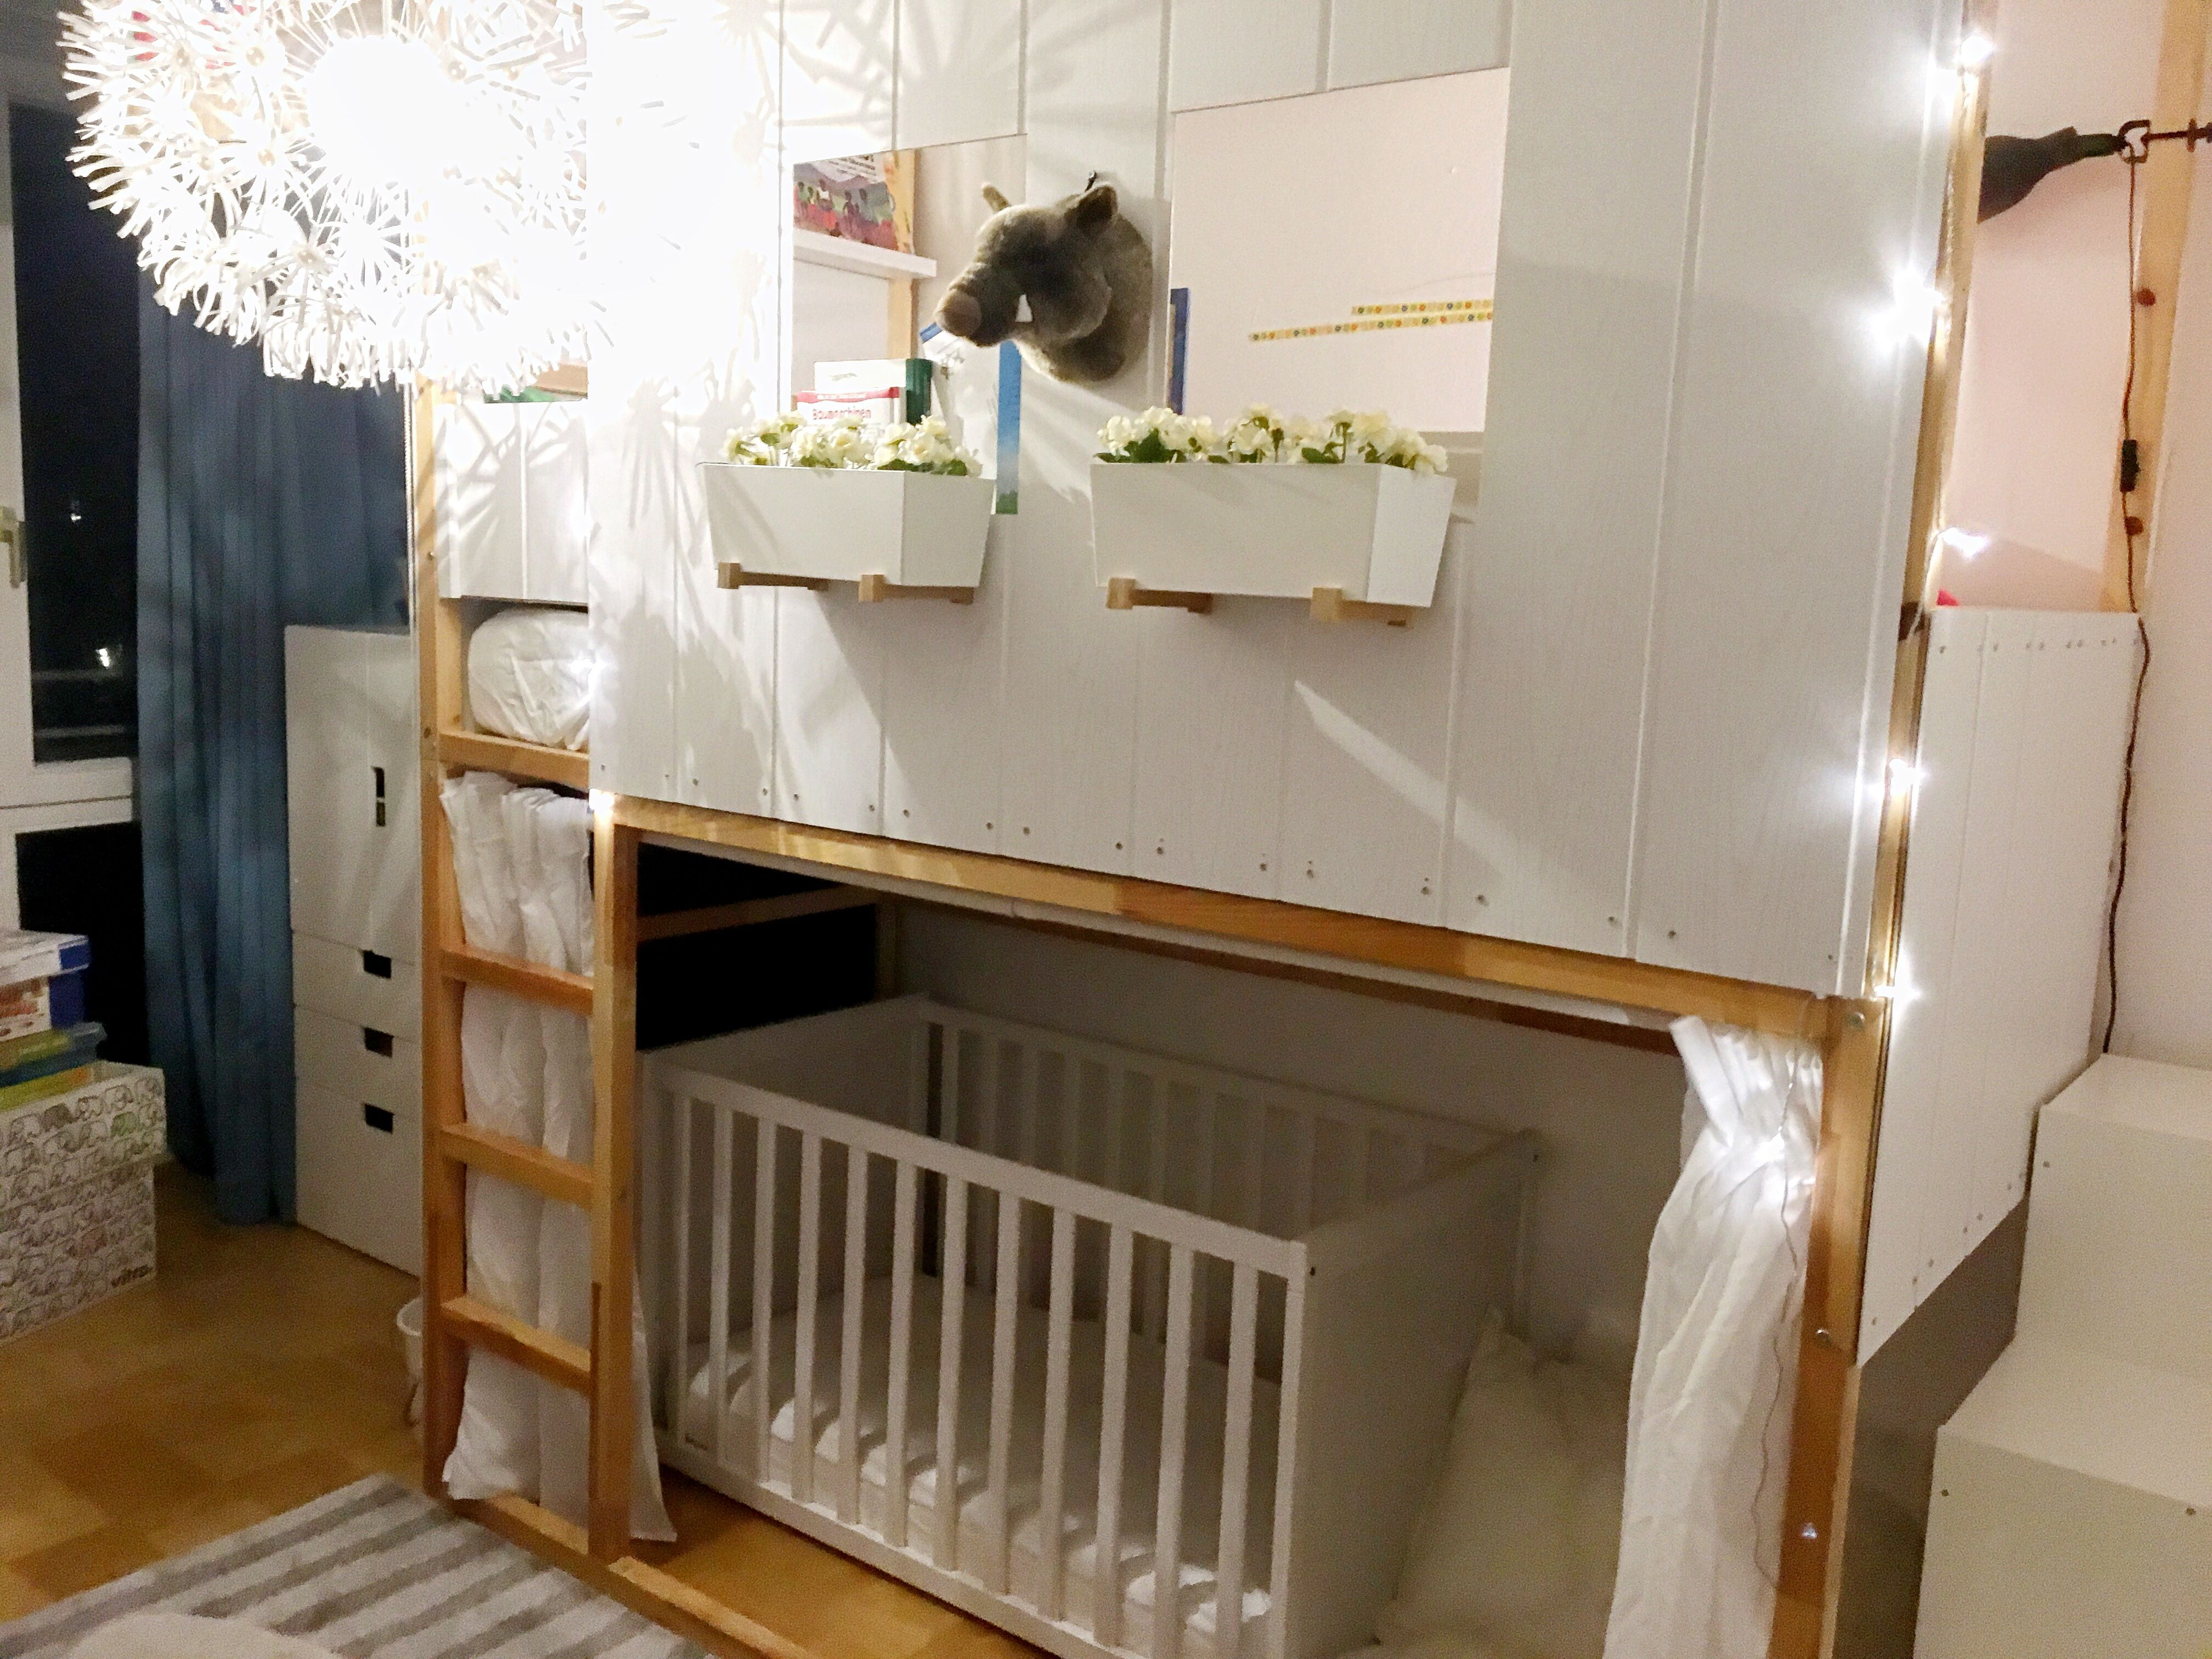 high bed / bunk bed with baby cot. ikea kura hack with two kura's as